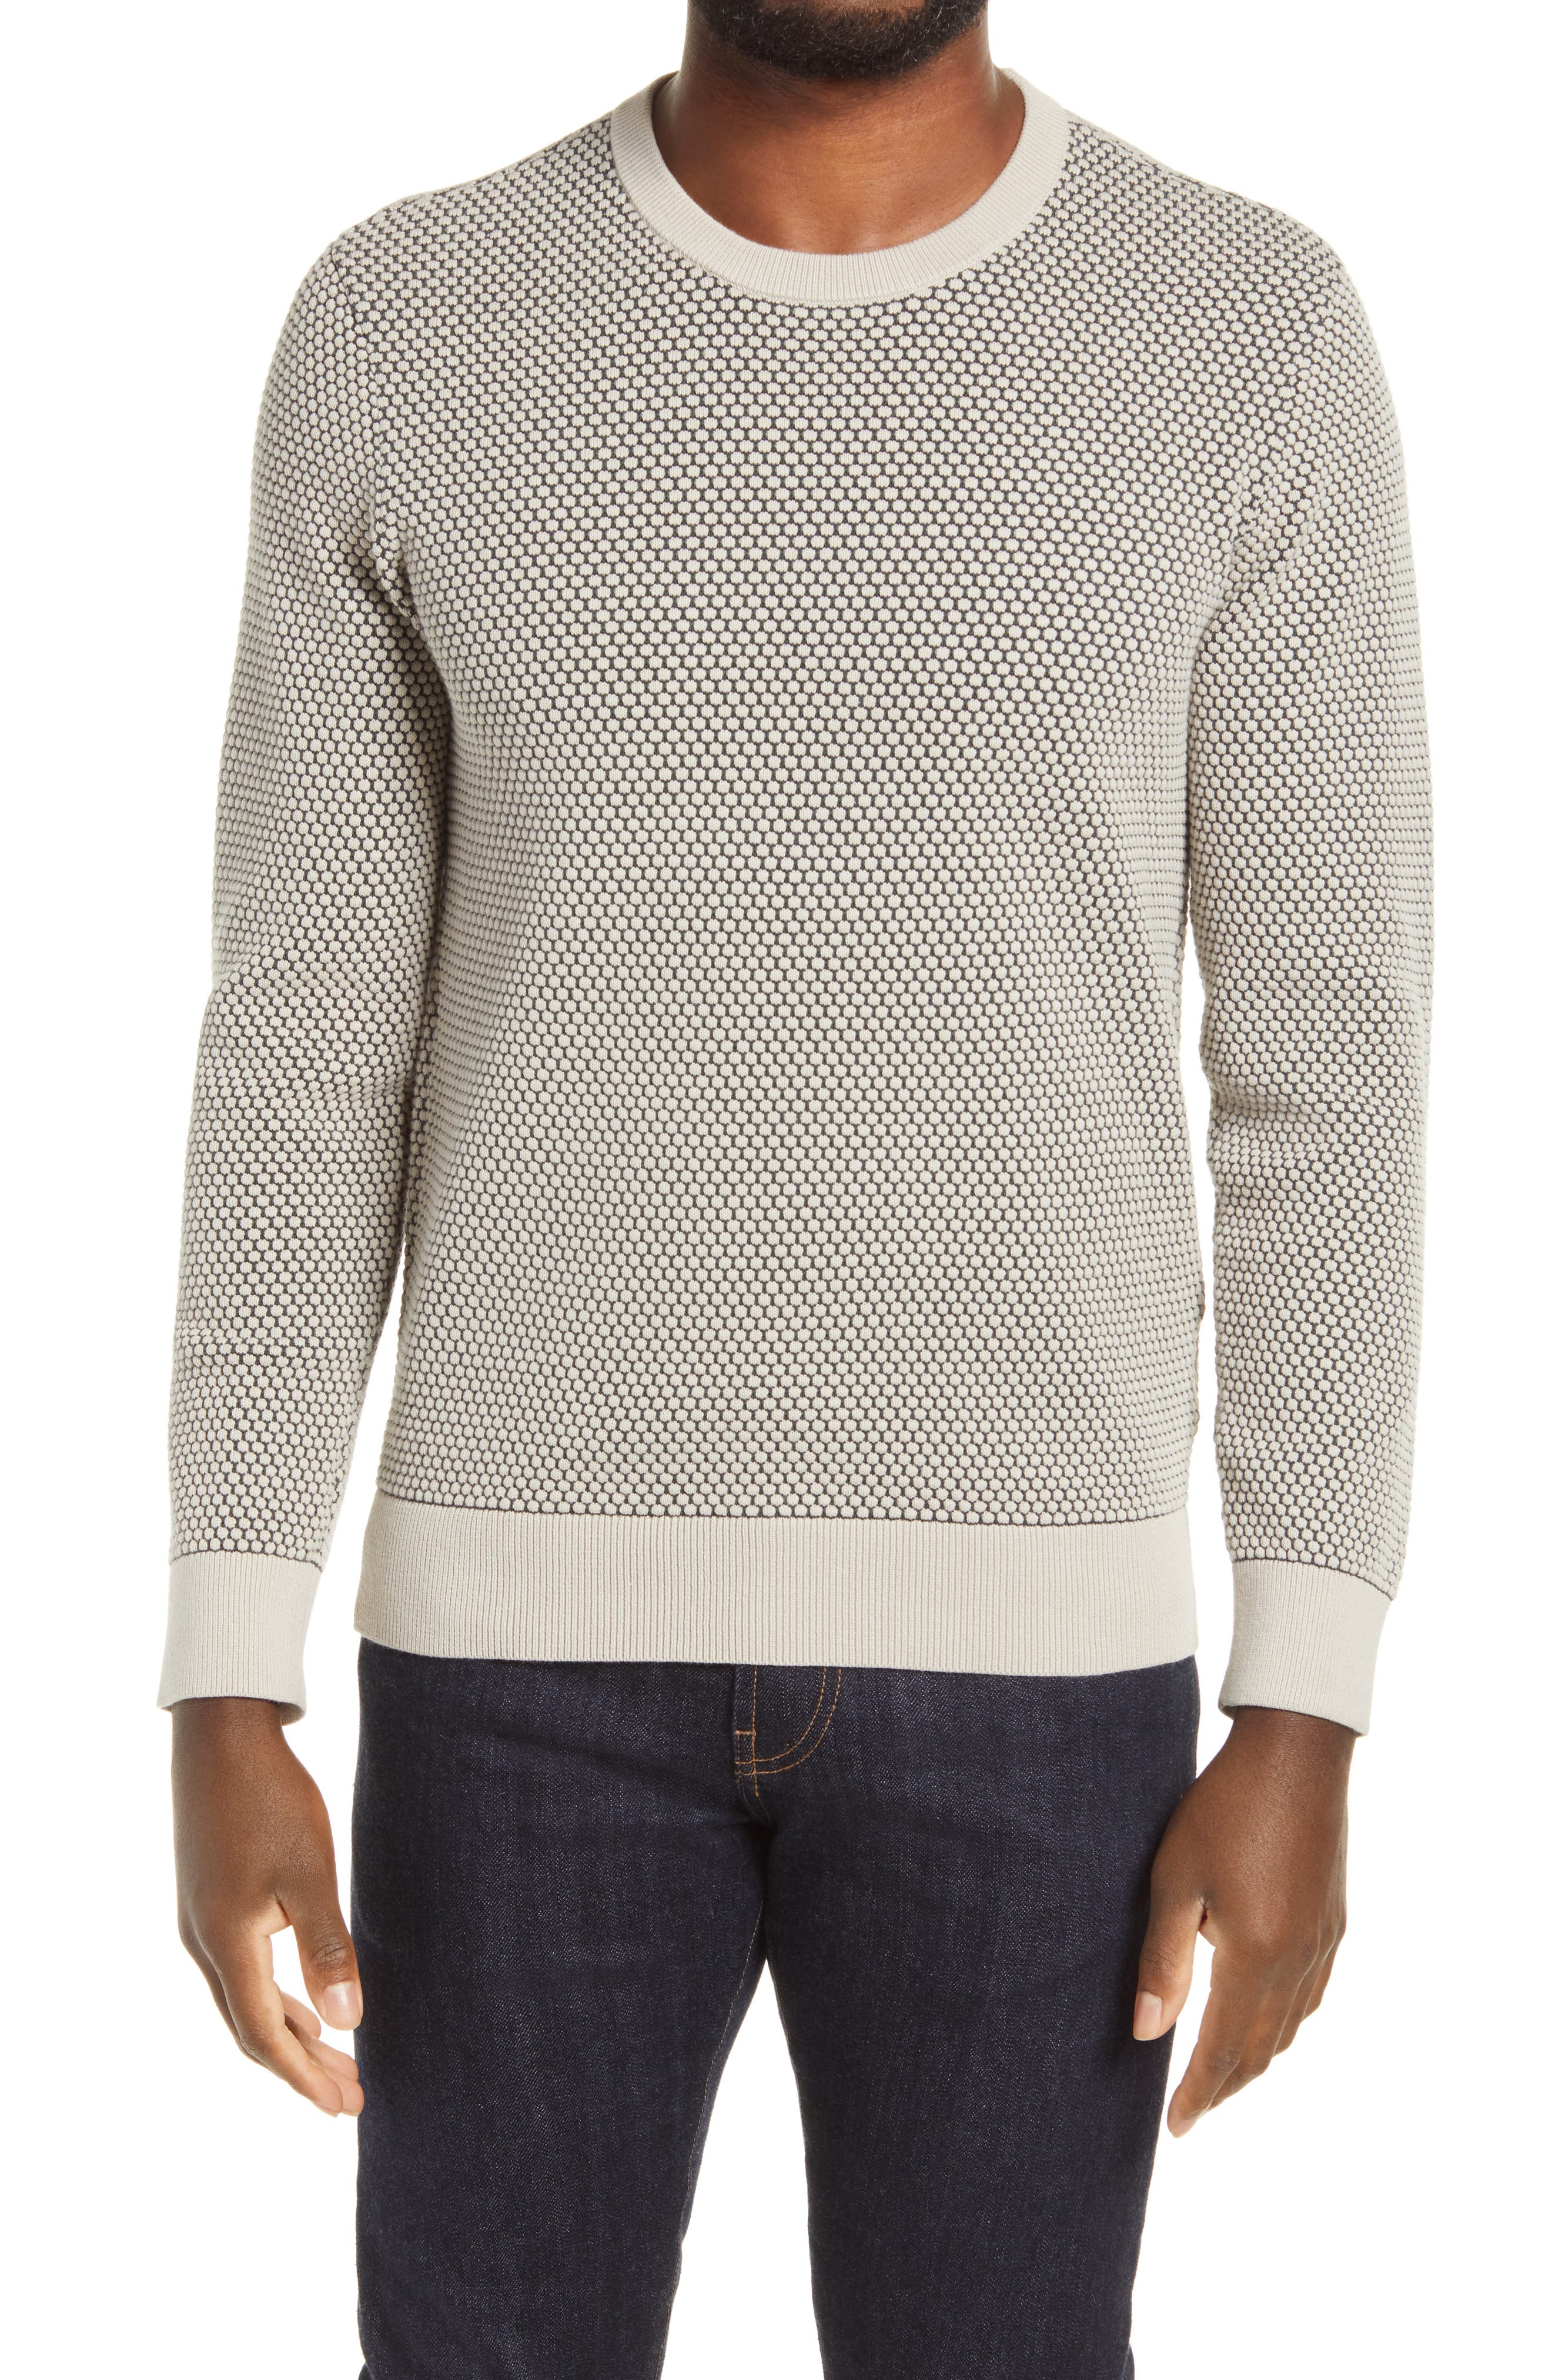 A chunky honeycomb stitch brings distinctive pattern and texture to a sweater framed in thick ribbing with a fit that\\\'s easy to layer and great on its own. Style Name: Club Monaco Men\\\'S Honeycomb Crewneck Sweater. Style Number: 6098986. Available in stores.